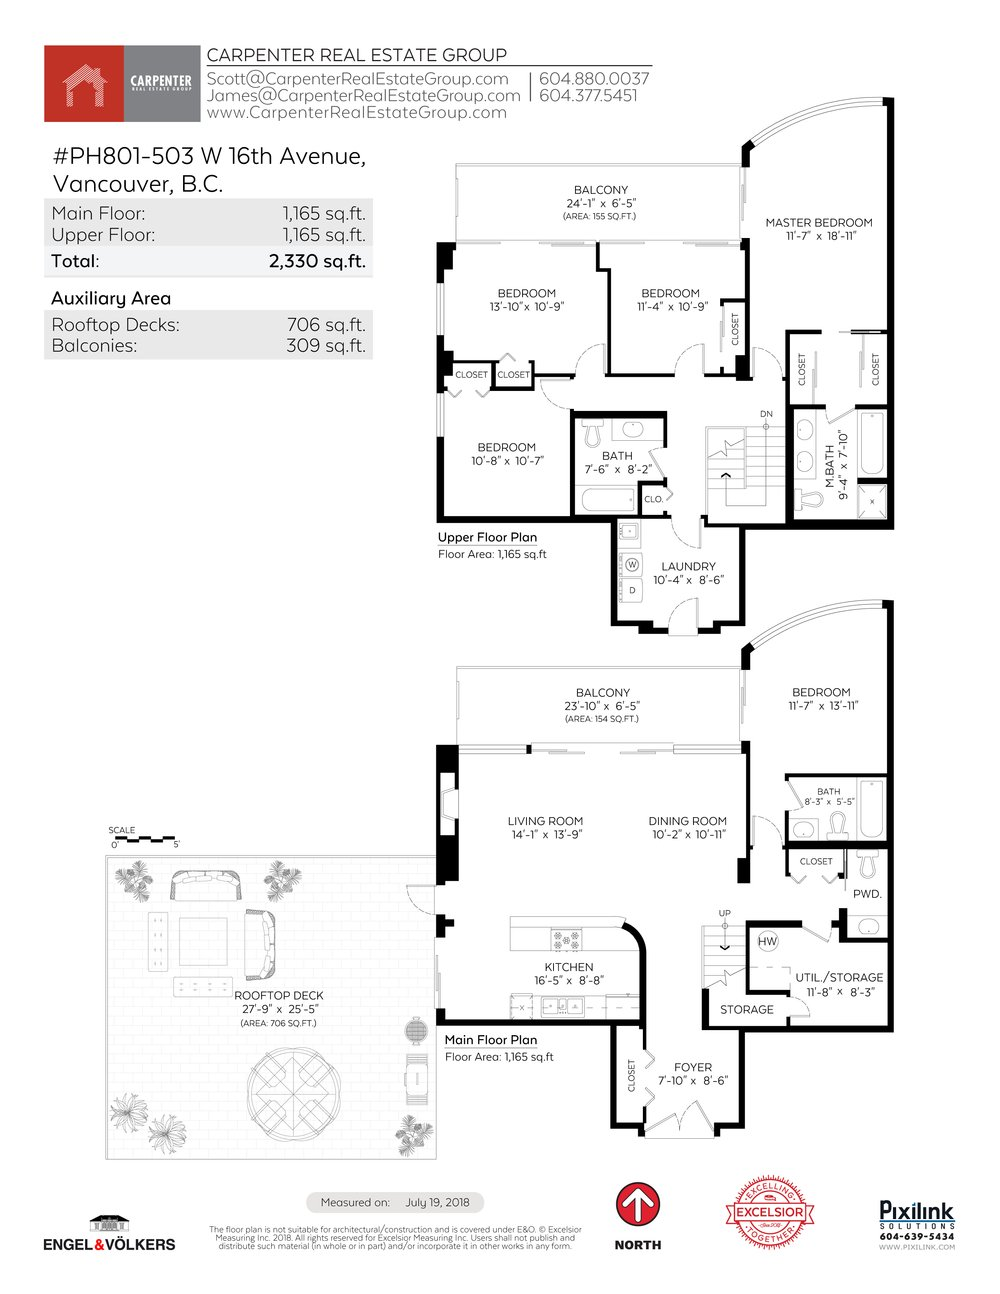 Floor Plan for a 5 Bedroom Apartment in Vancouver